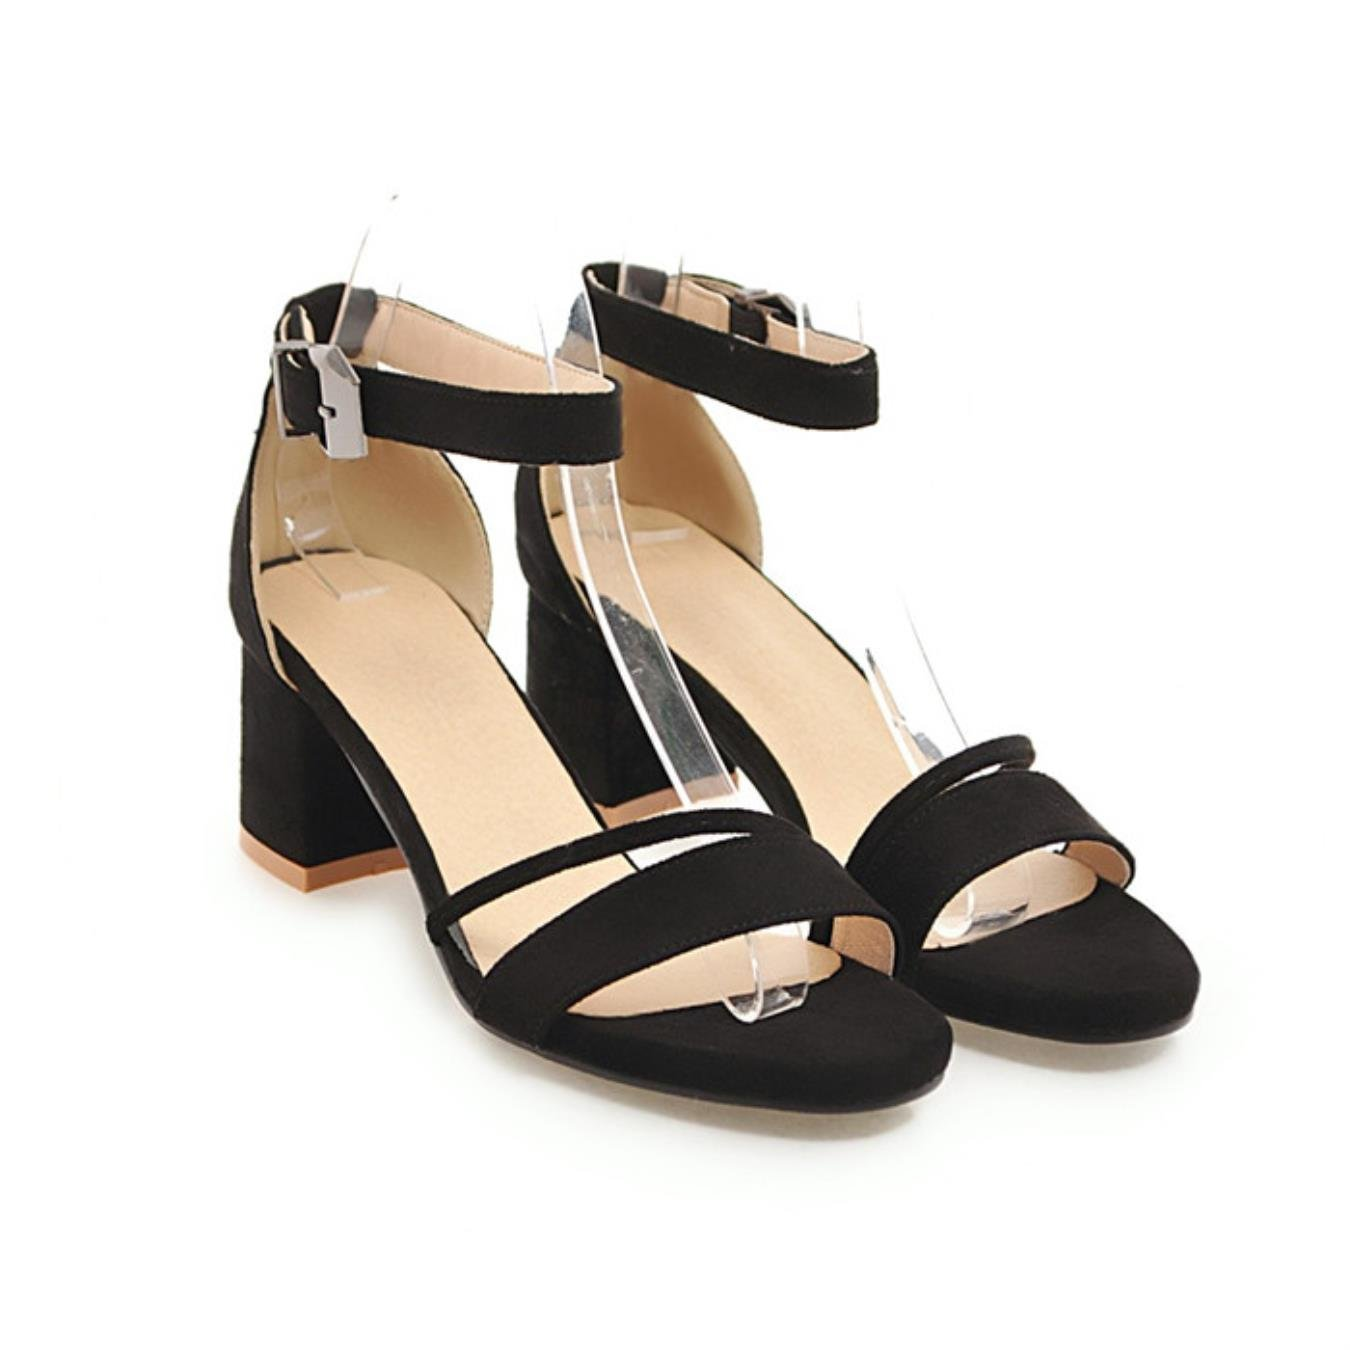 83ddbe0e2c1e4 Amazon.com  Meotina Sandals High Heels Summer Shoes Woman Peep Toe Block  Heels Ankle Strap Sandals  Clothing